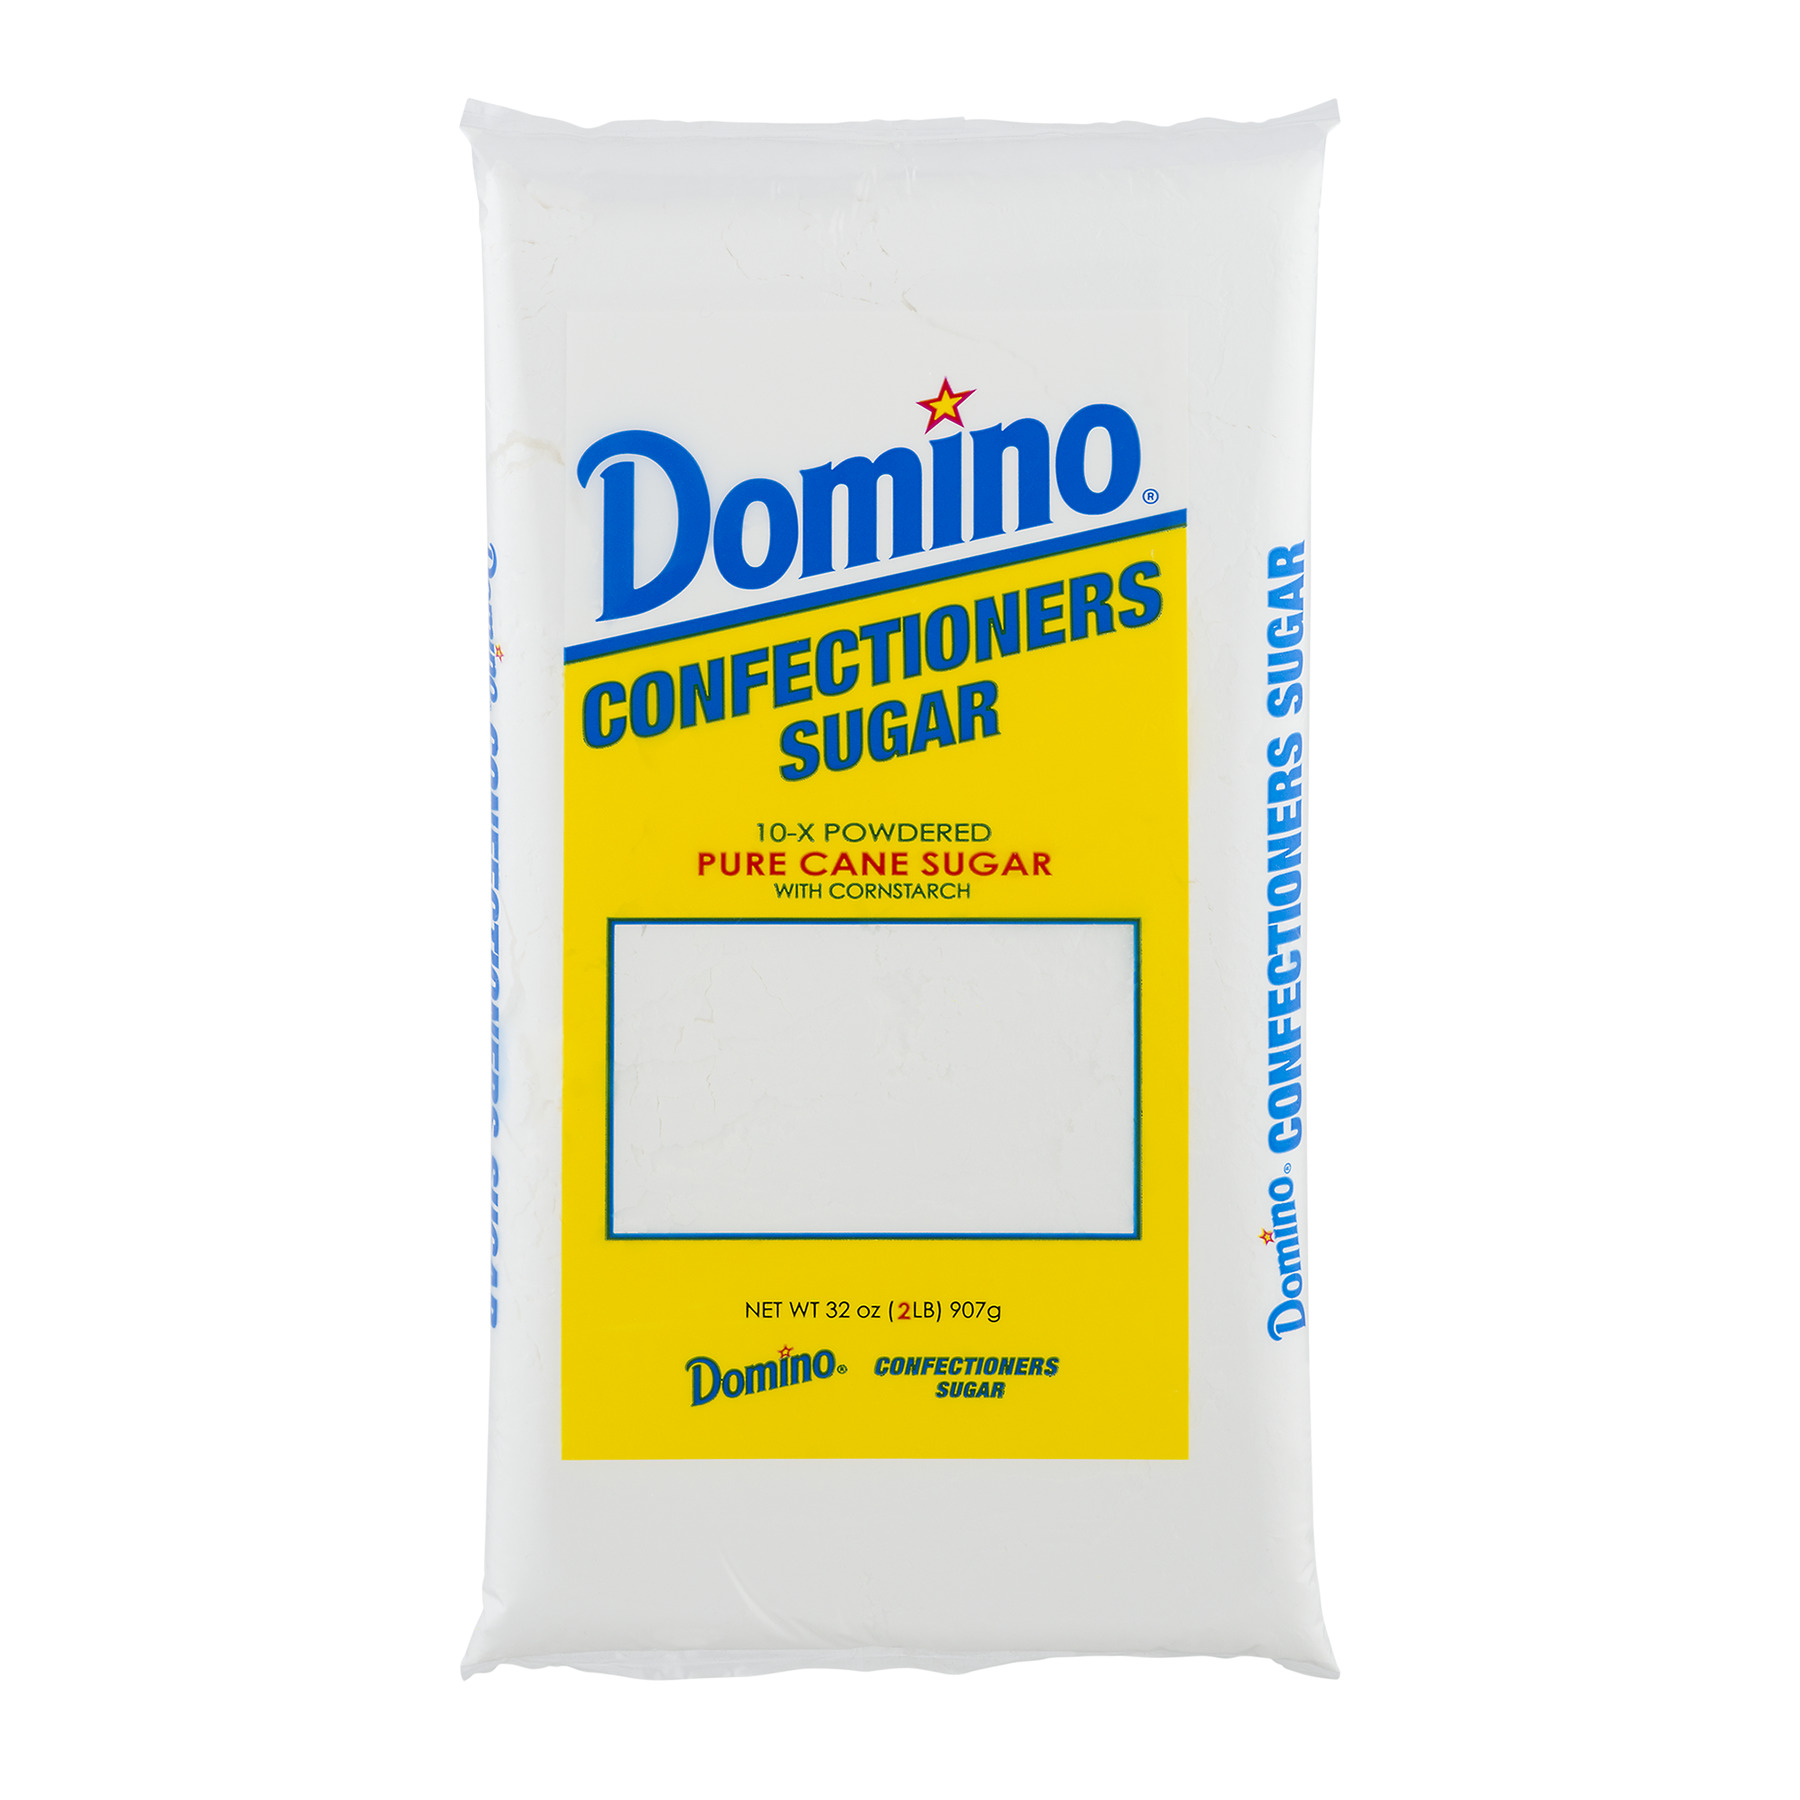 Domino Pure Cane Confectioners 10-X Powdered Sugar, 2 lb